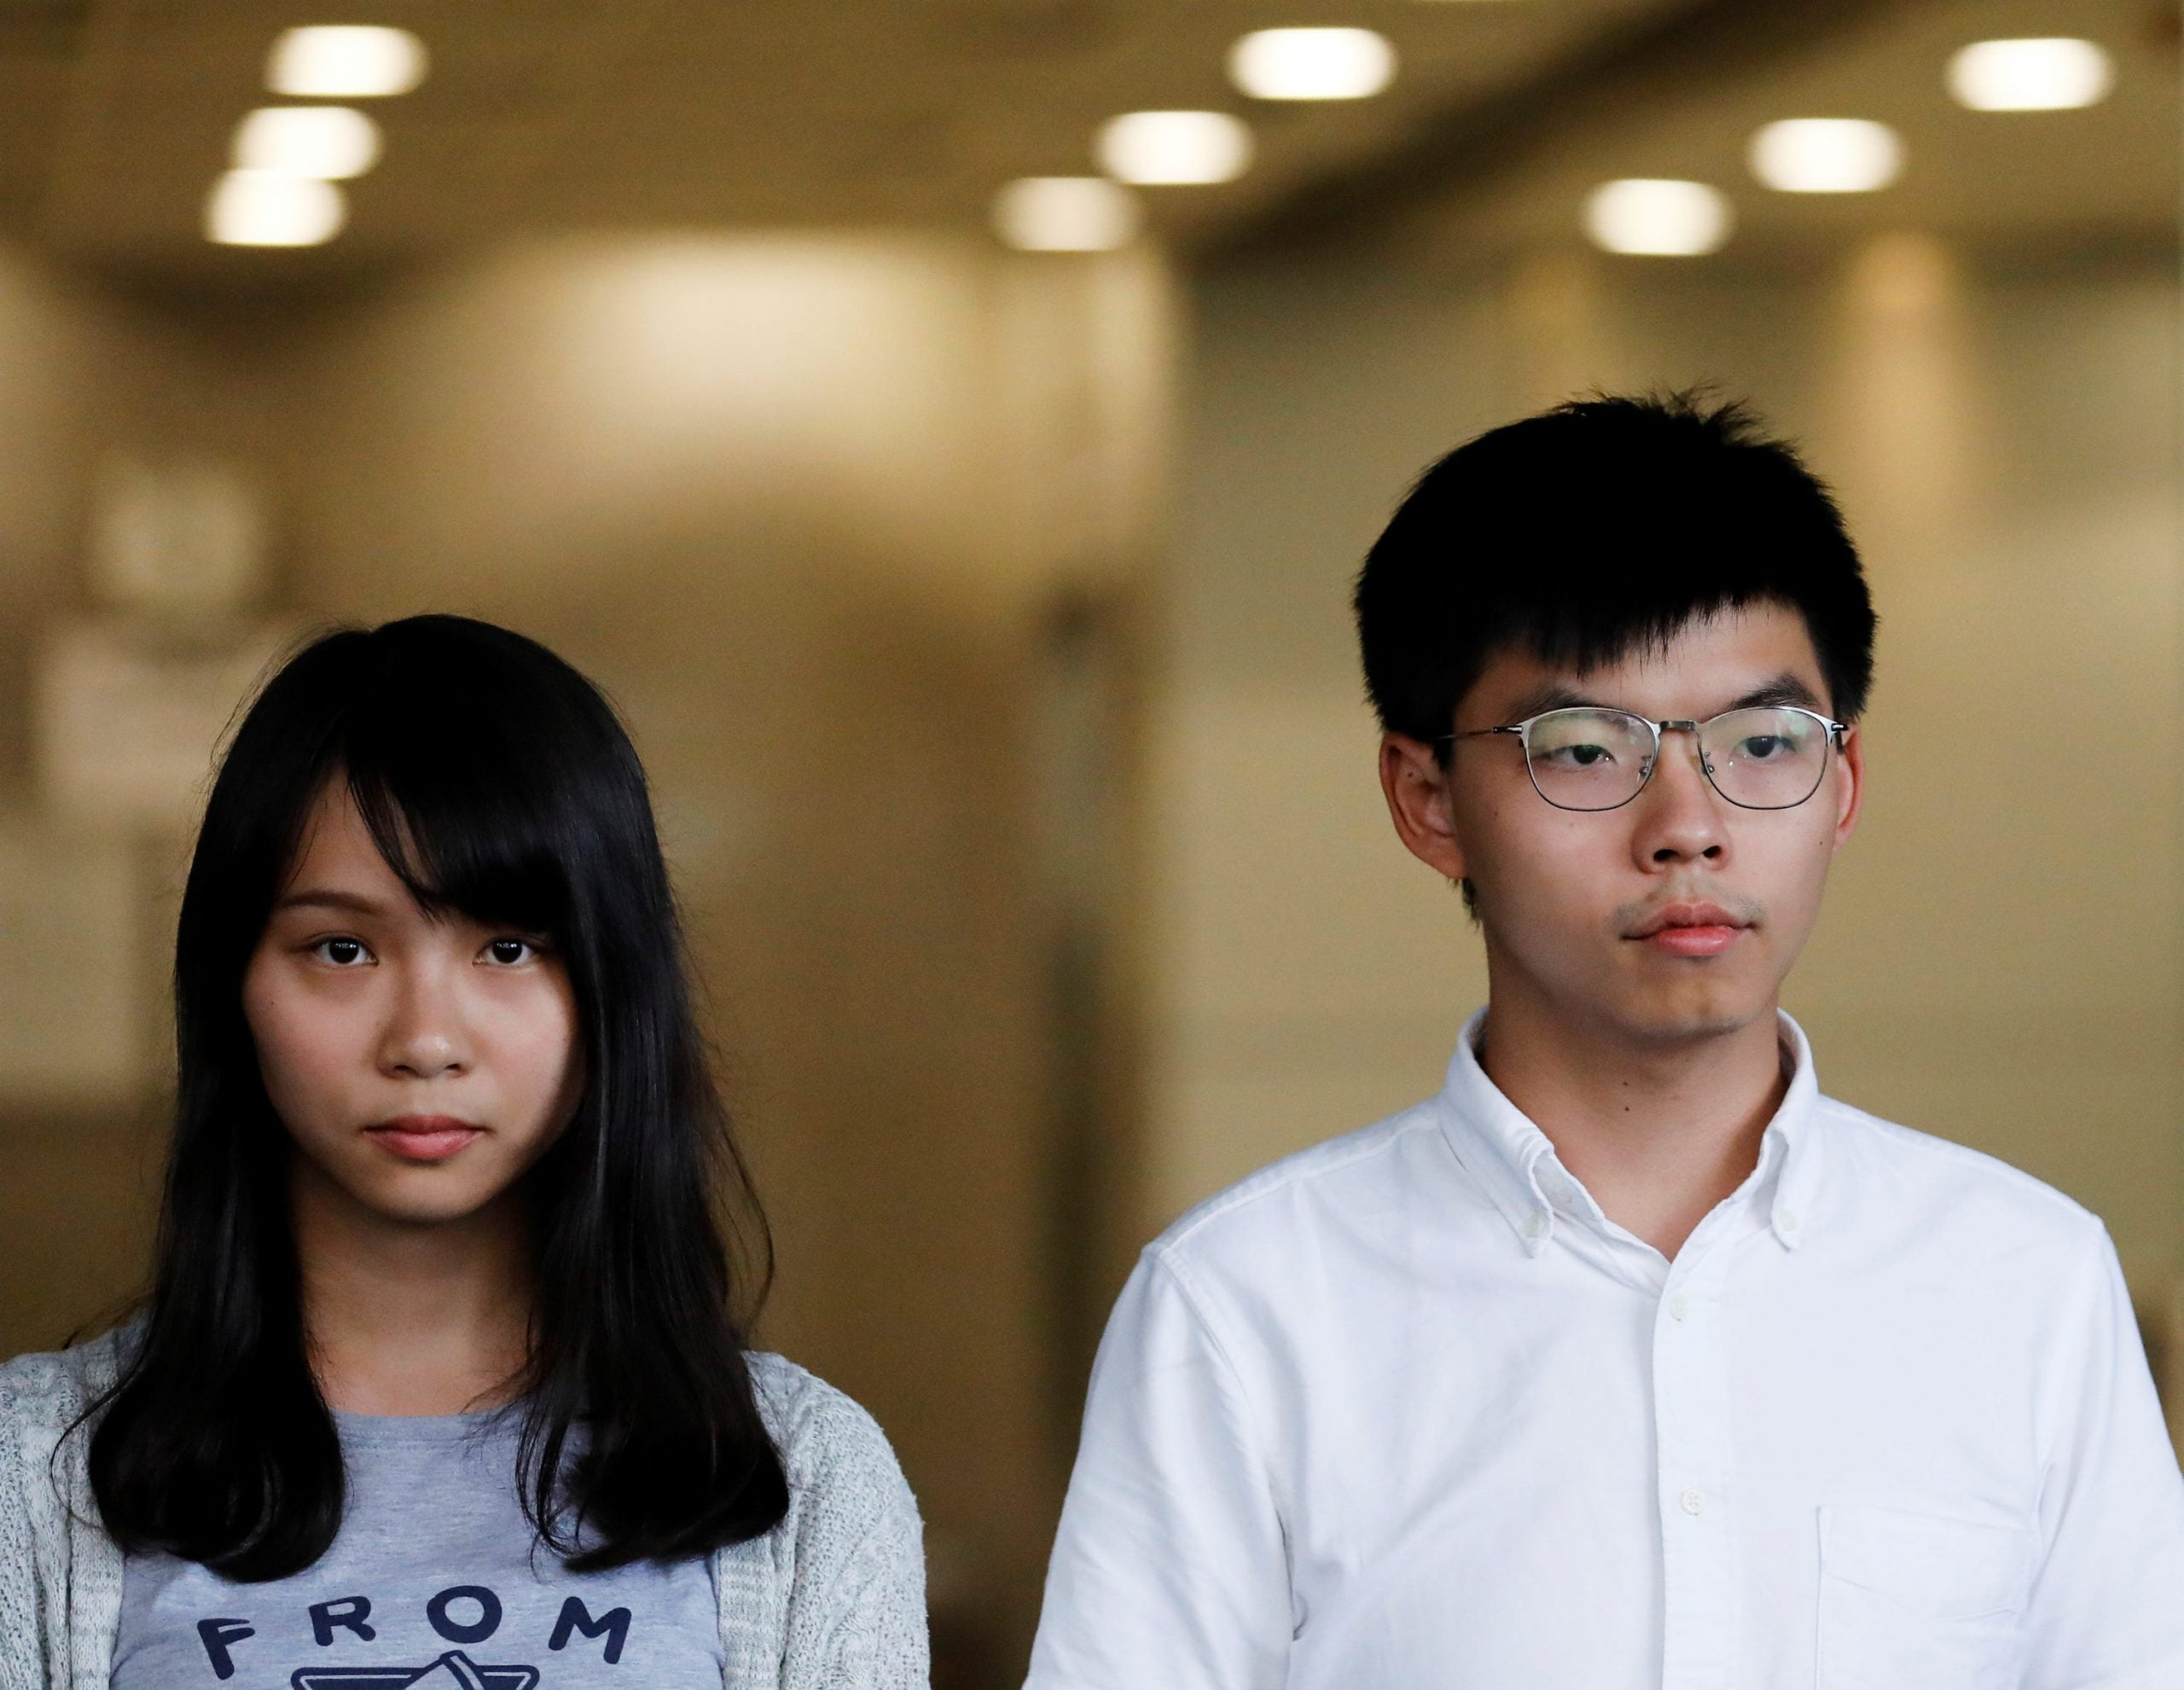 Three influential pro-democracy activists released on bail in Hong Kong